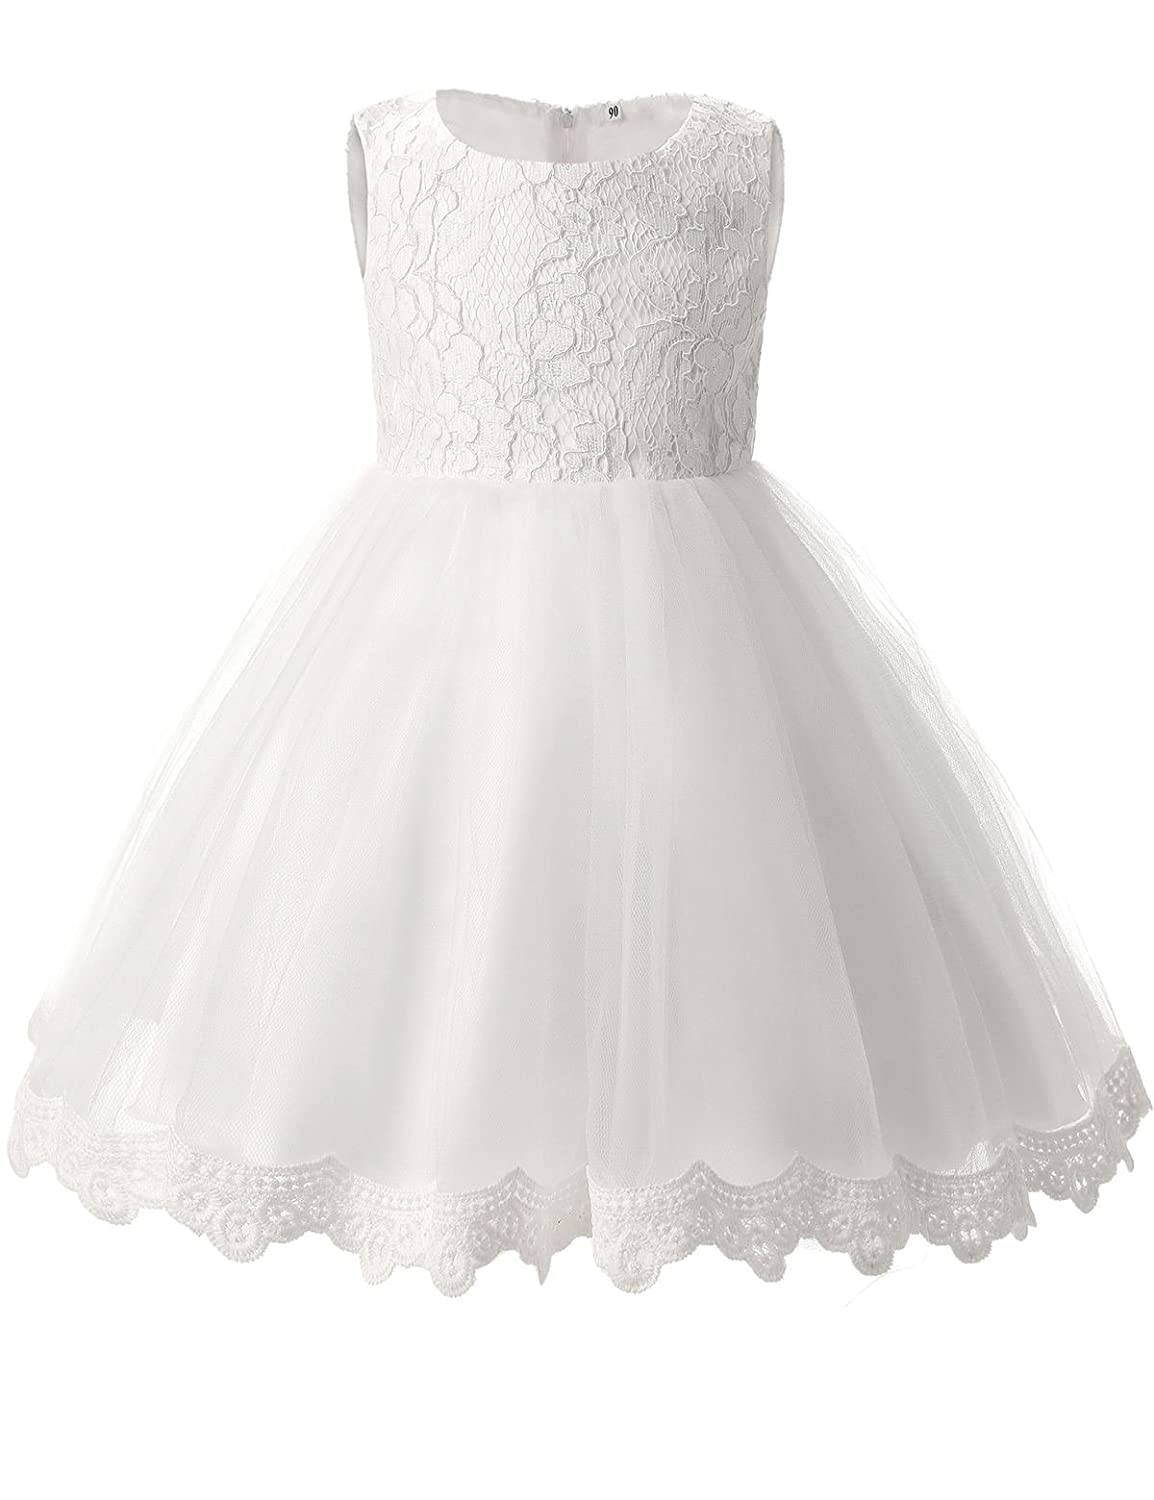 ca22effddd6 Amazon.com  TTYAOVO Girls Lace Tulle Flower Princess Party Toddler and Baby  Girl Dress  Clothing